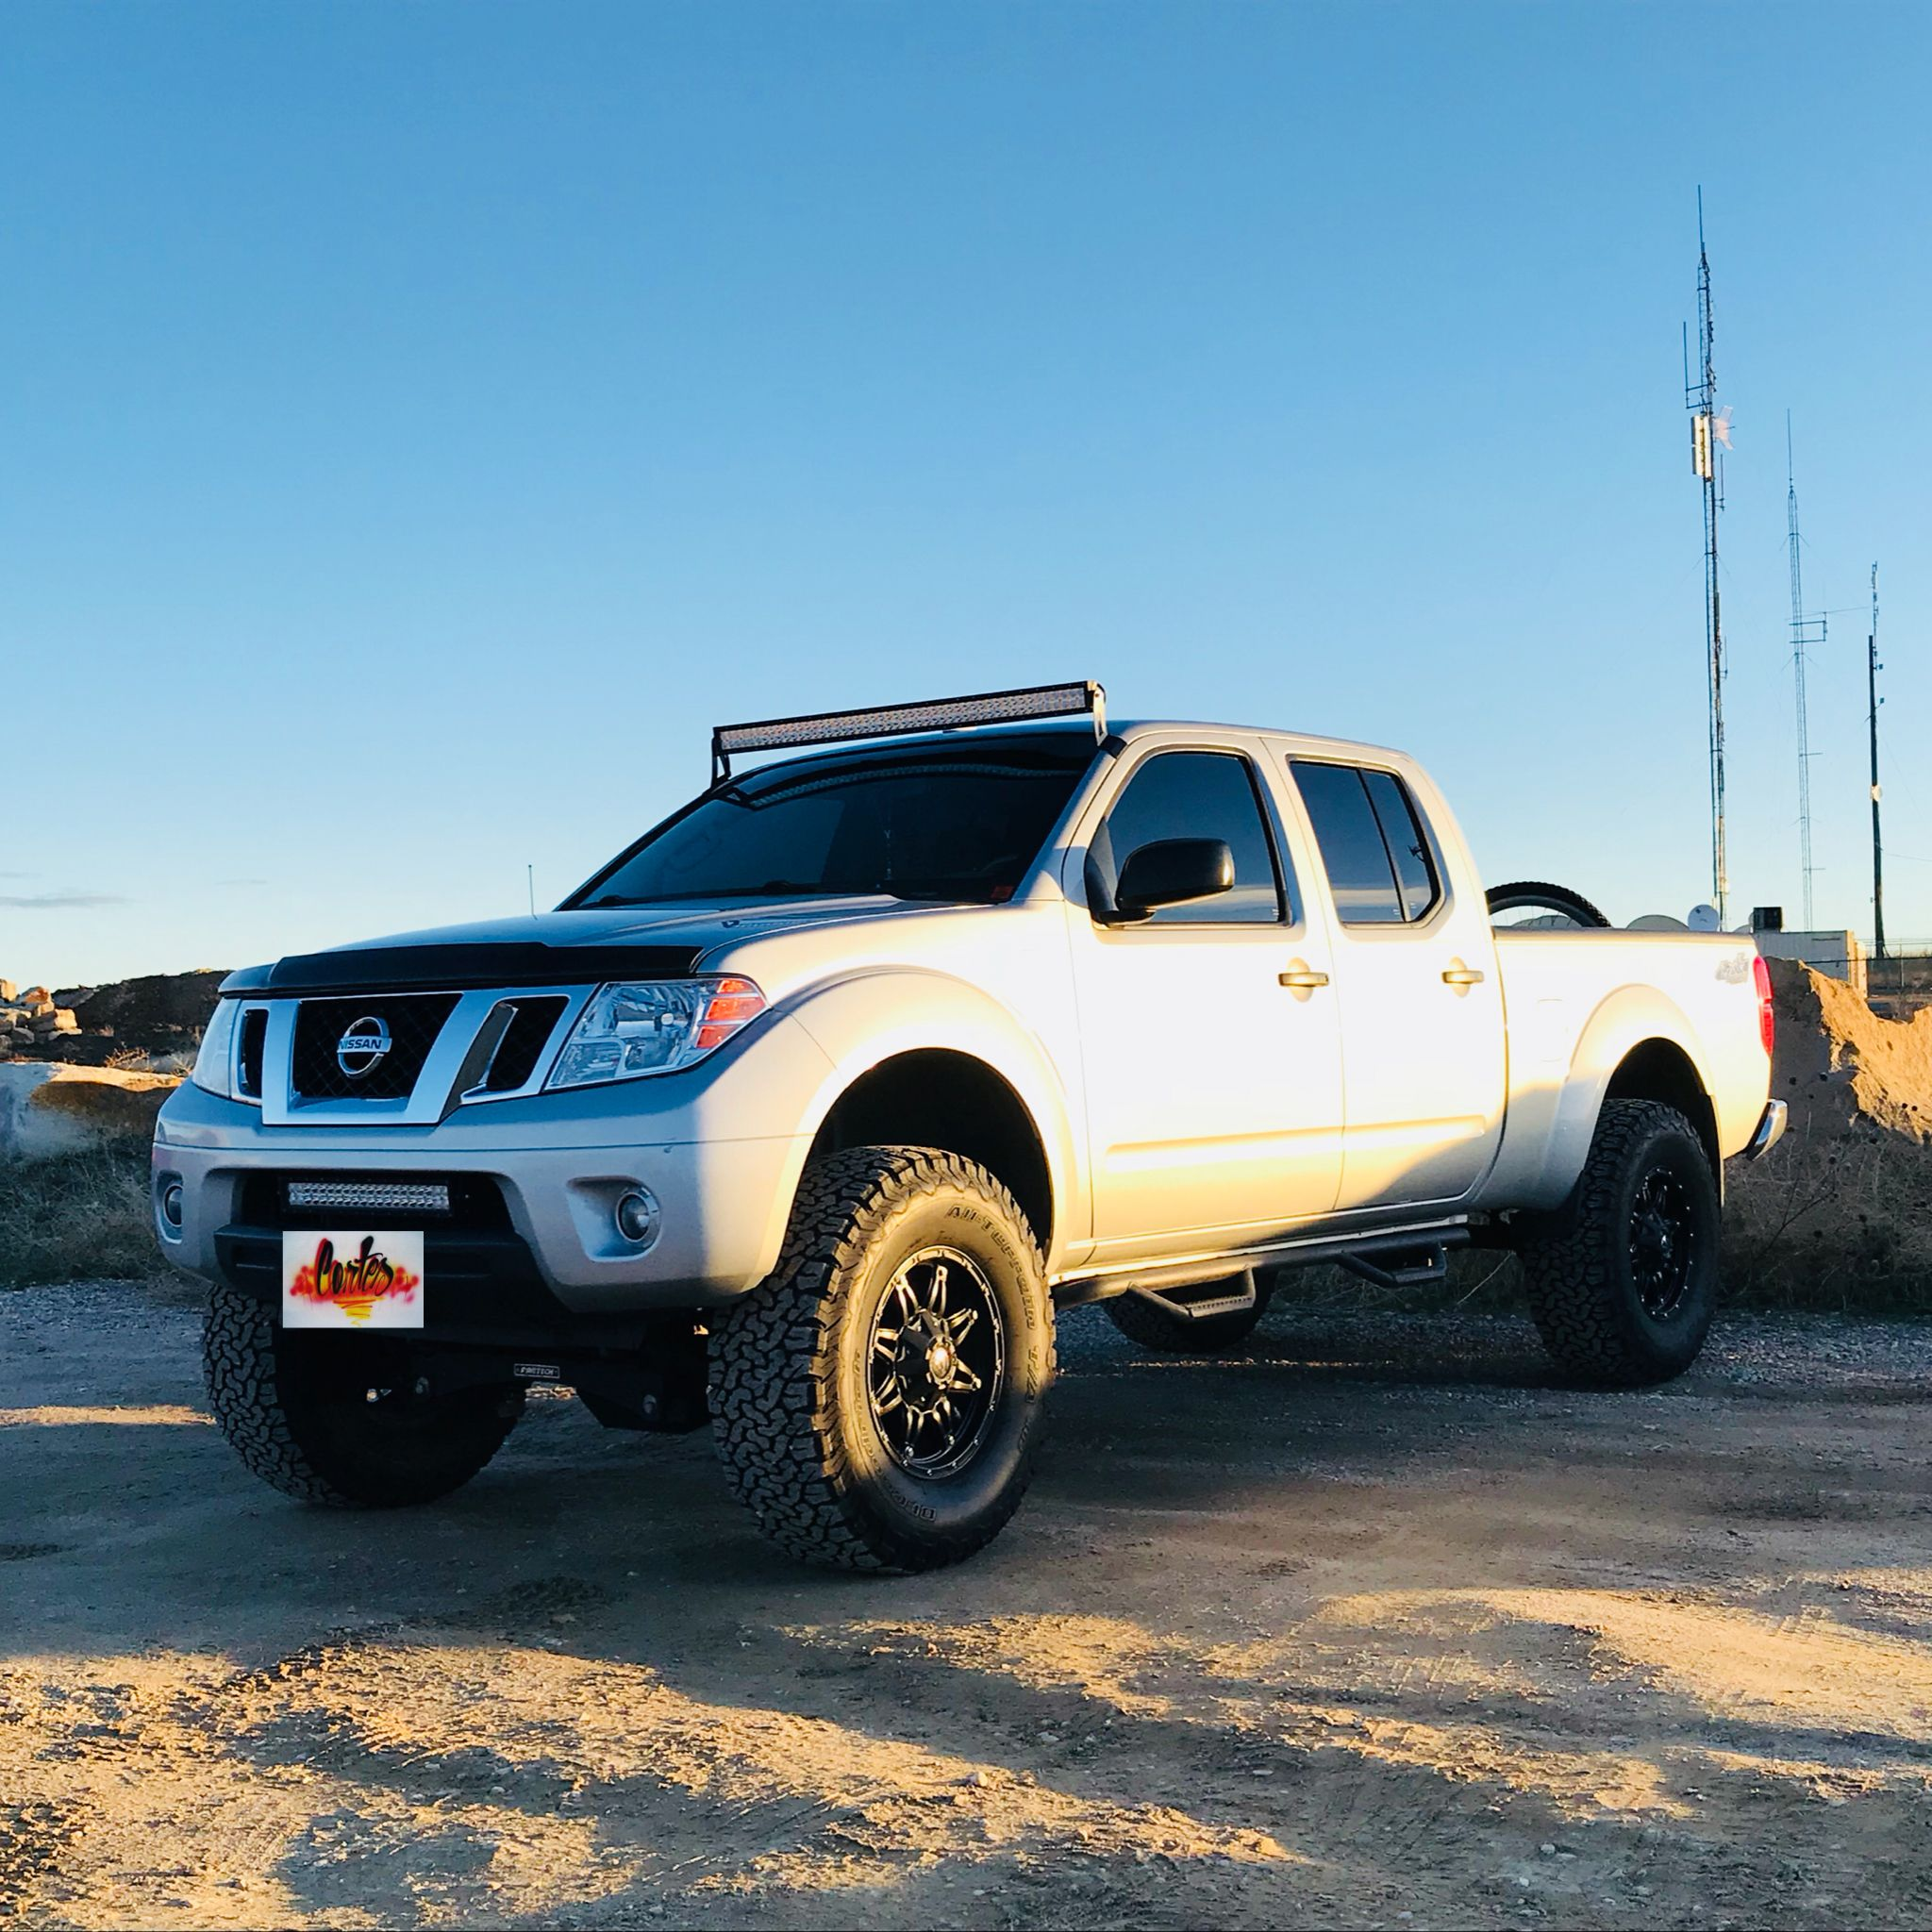 Nissan frontier 4x4 off road with fabtech 6 fabtech nissan nissan frontier 4x4 off road with fabtech 6 fabtech aloadofball Image collections